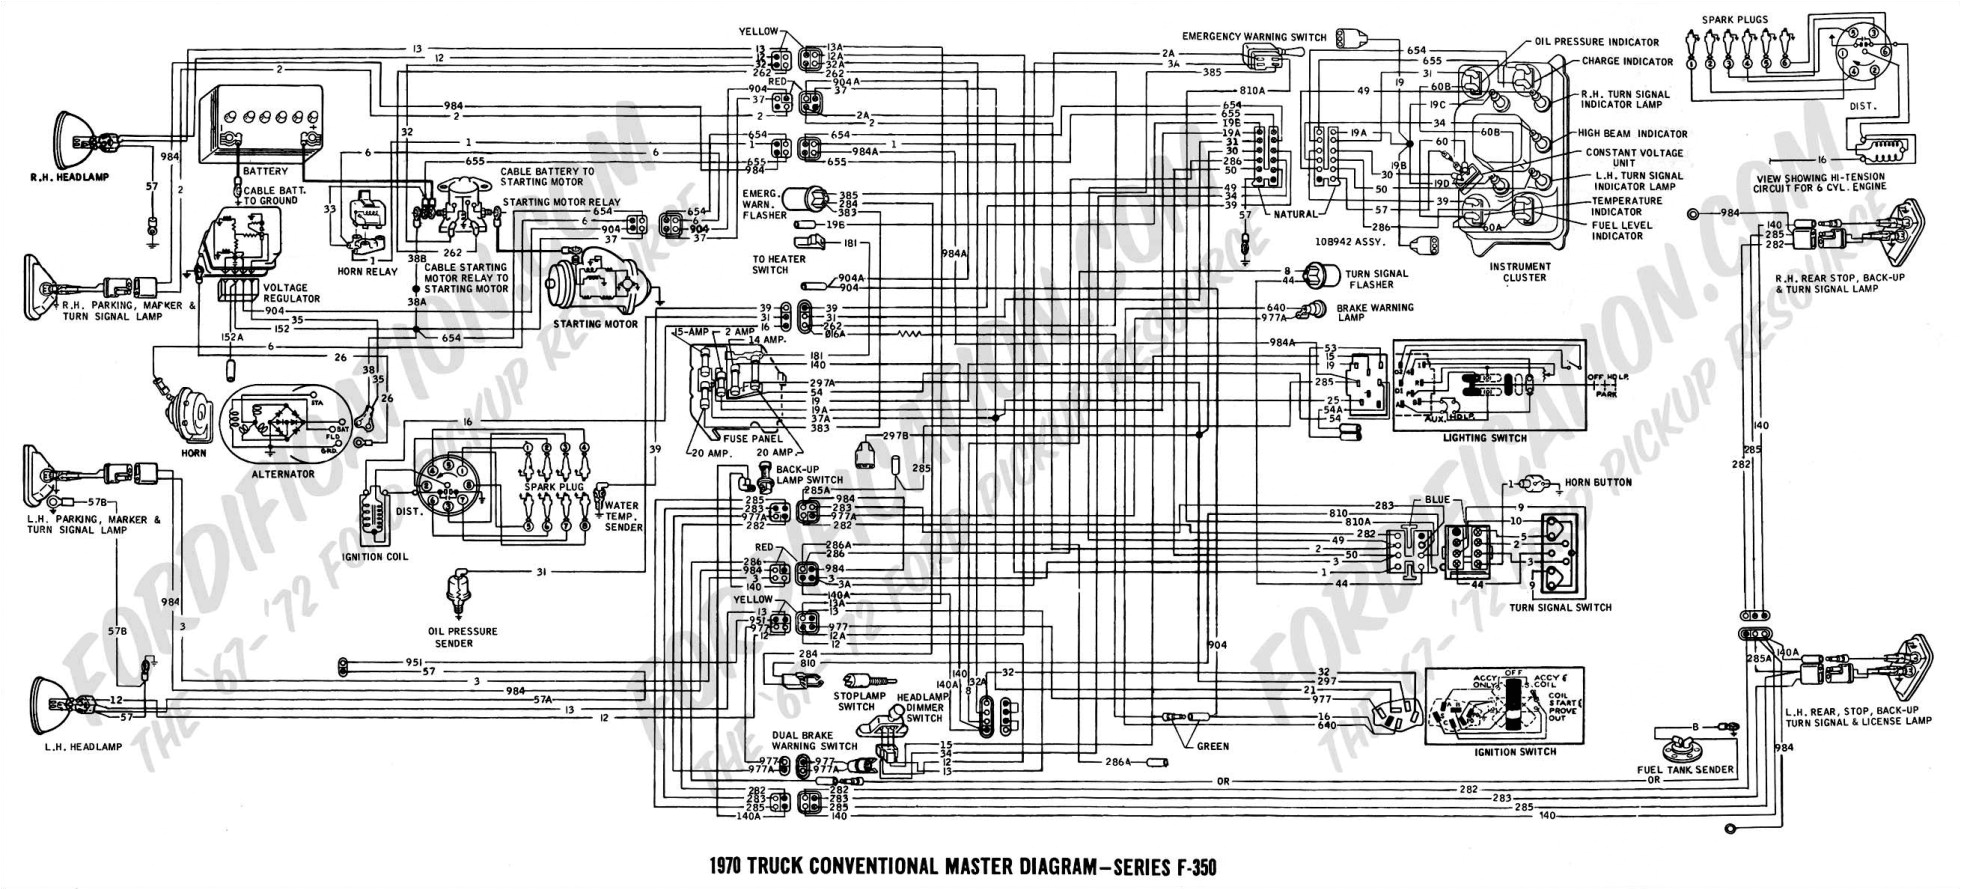 2000 ford 4 6 engine wiring wiring diagram used 2000 ford 4 6 engine wiring data